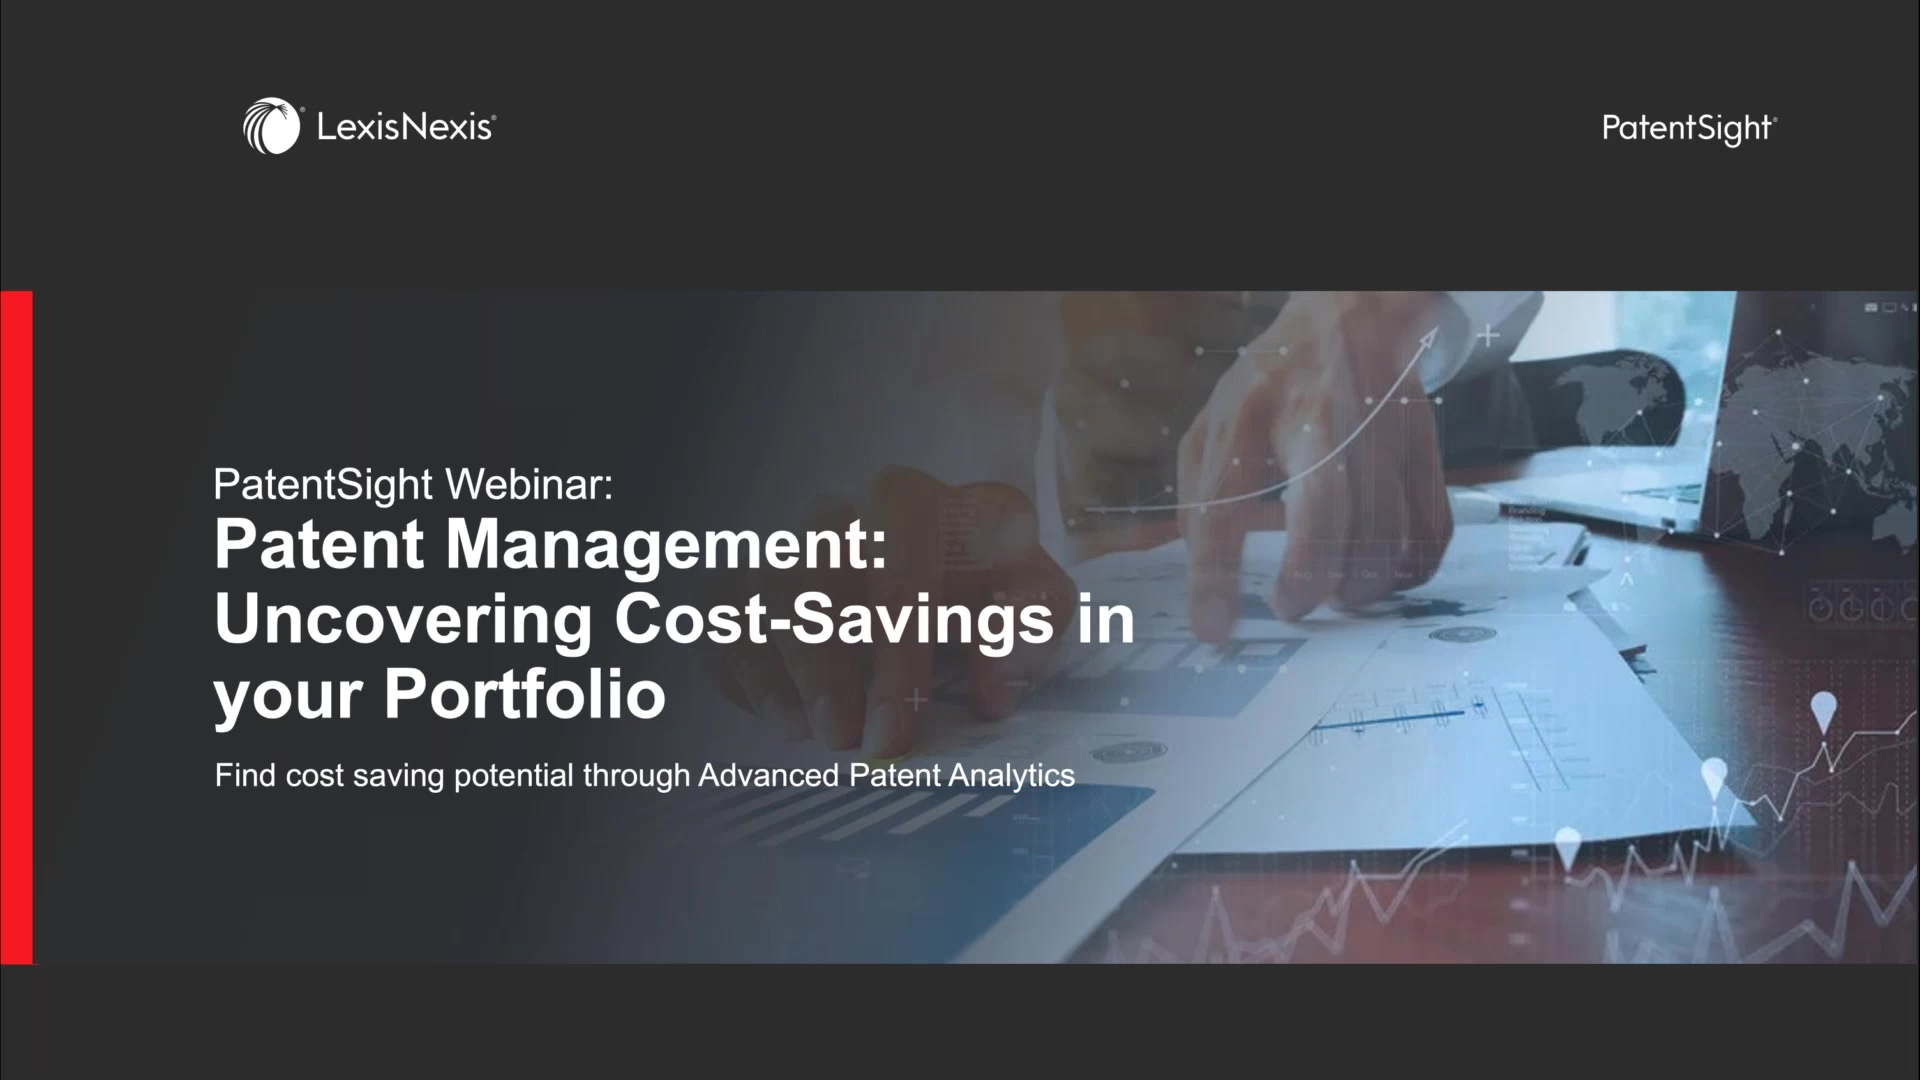 PatentSight Webinar_ Uncovering Cost-Savings in your Portfolio